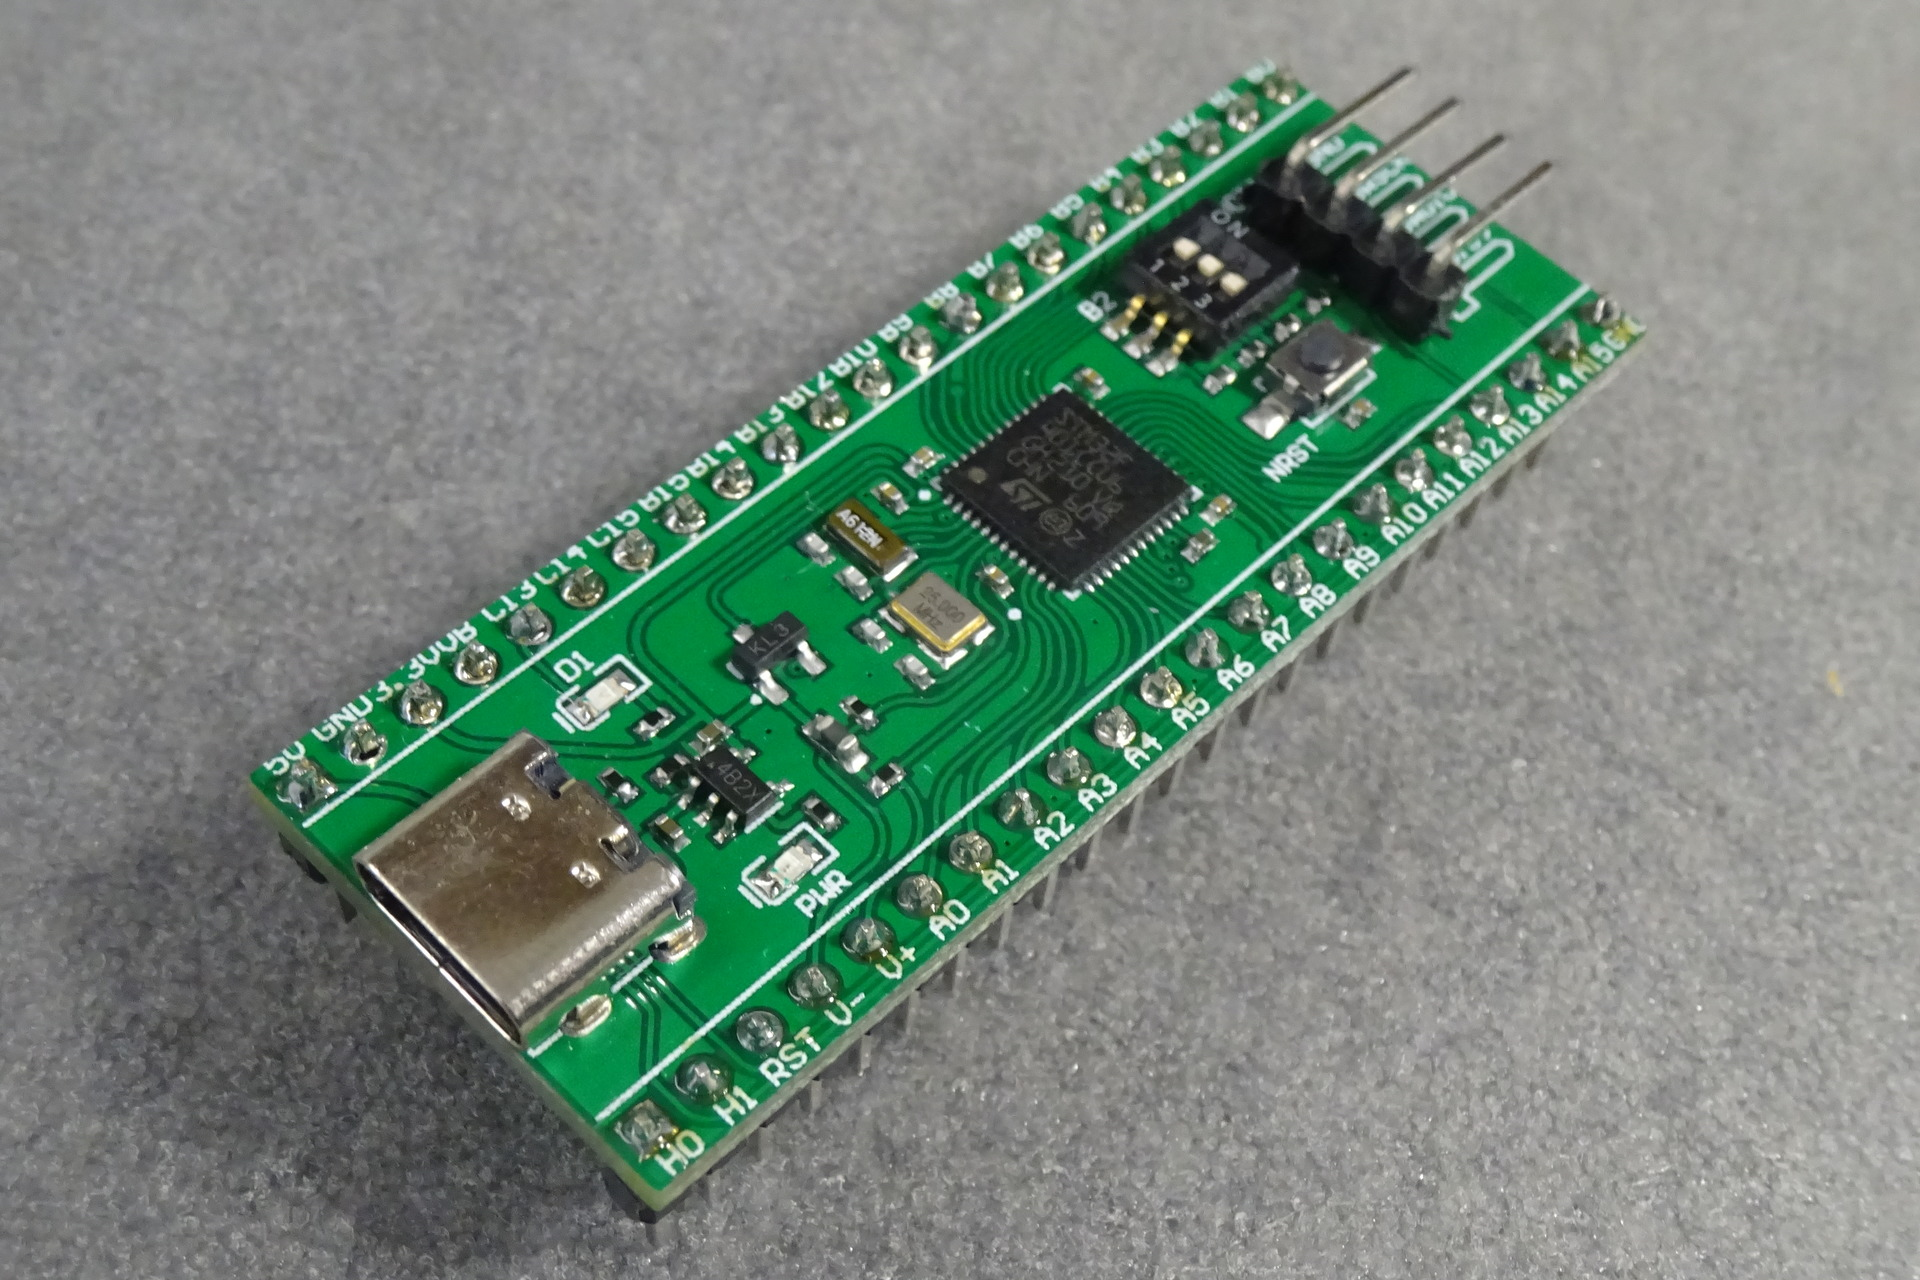 STM32 Mini F401: Perspective view